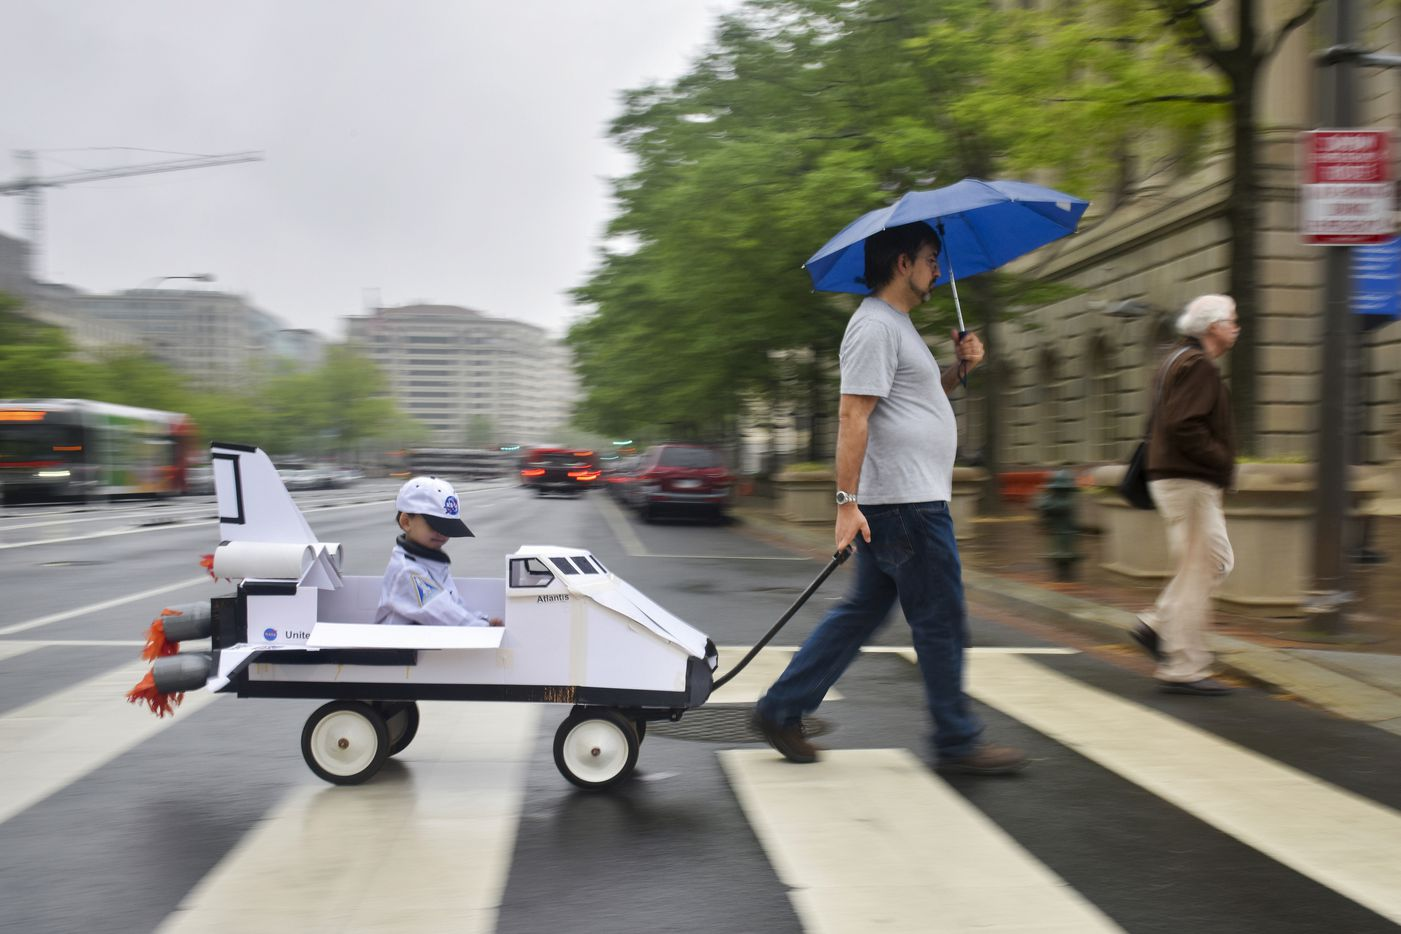 Tomas Carbonell pulls his son, Felipe Carbonell-Boon, in a mock NASA space shuttle as advocates gather on the National Mall for the March for Science on Saturday, April 22, 2017, in Washington. The father works for an environmental defense fund geared toward climate change and clean air. (Jahi Chikwendiu/The Washington Post)